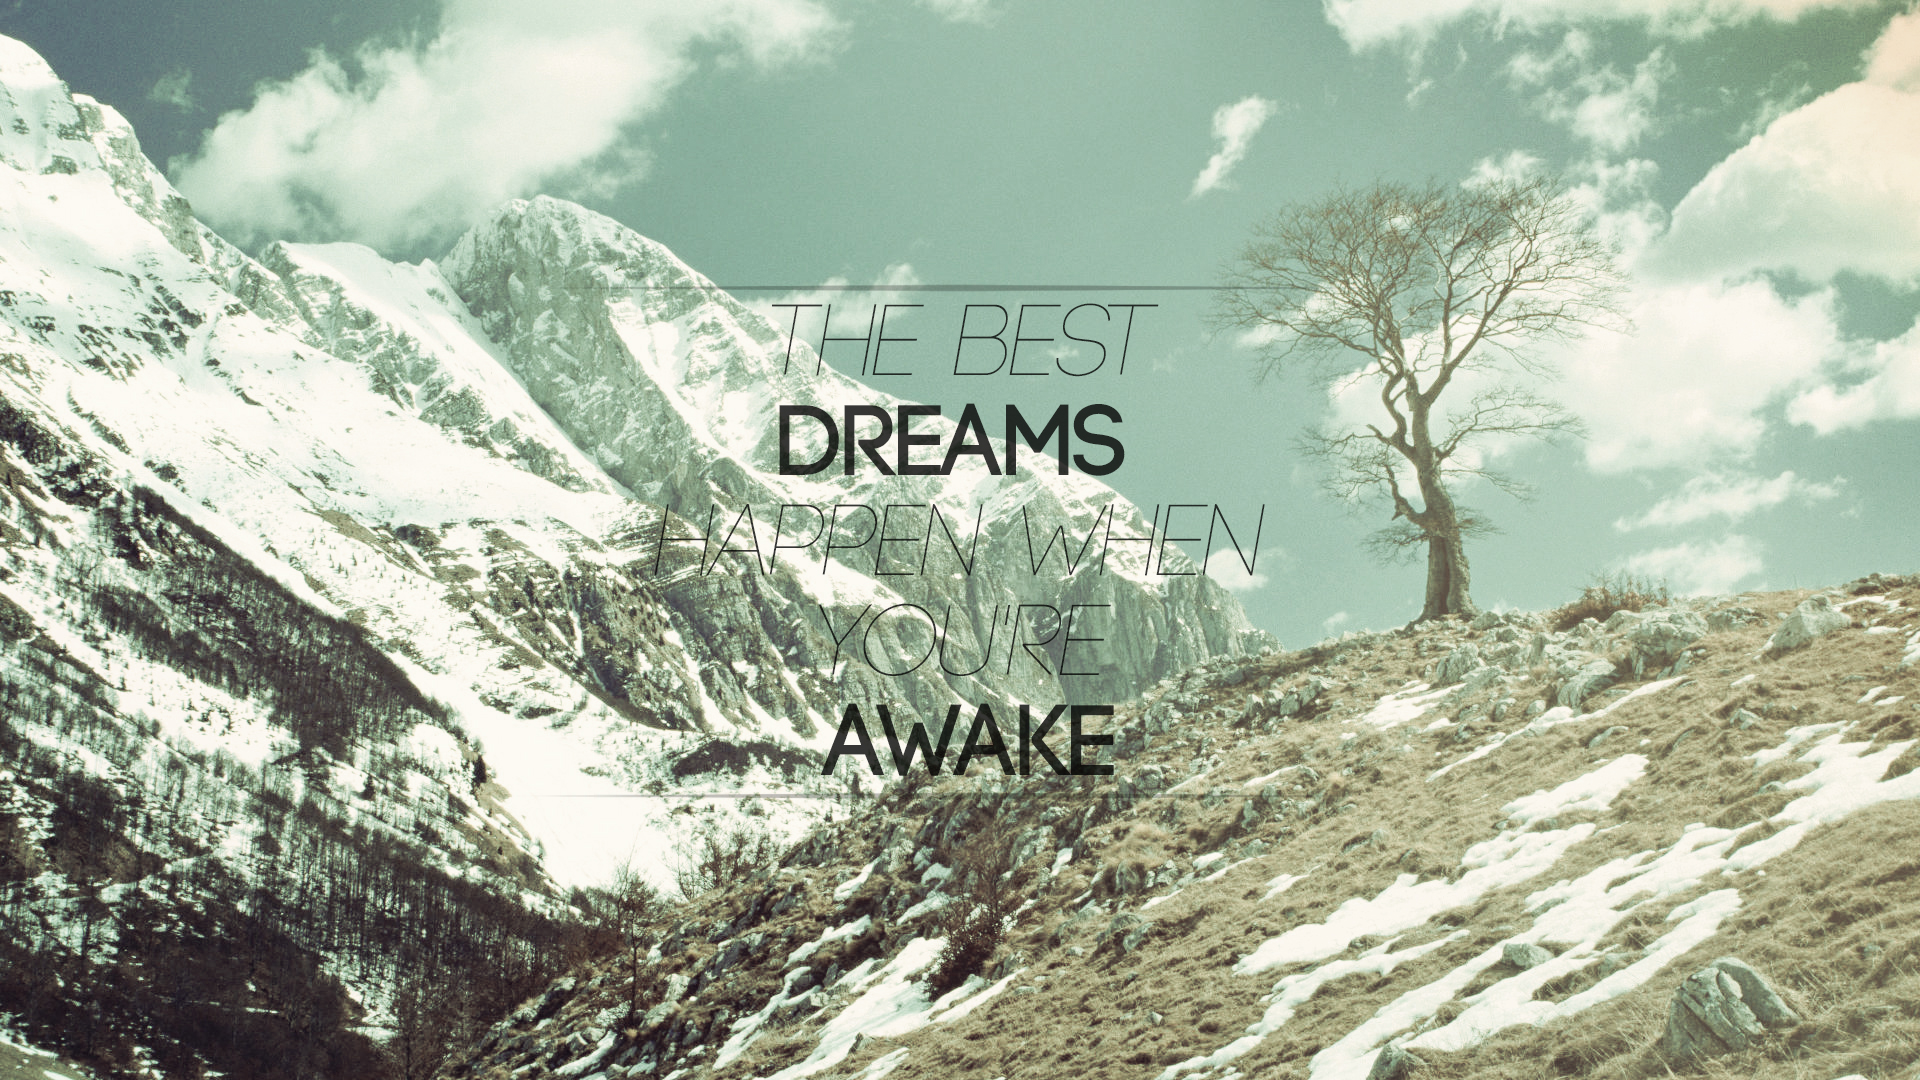 Dreams Full HD Wallpaper And Background Image